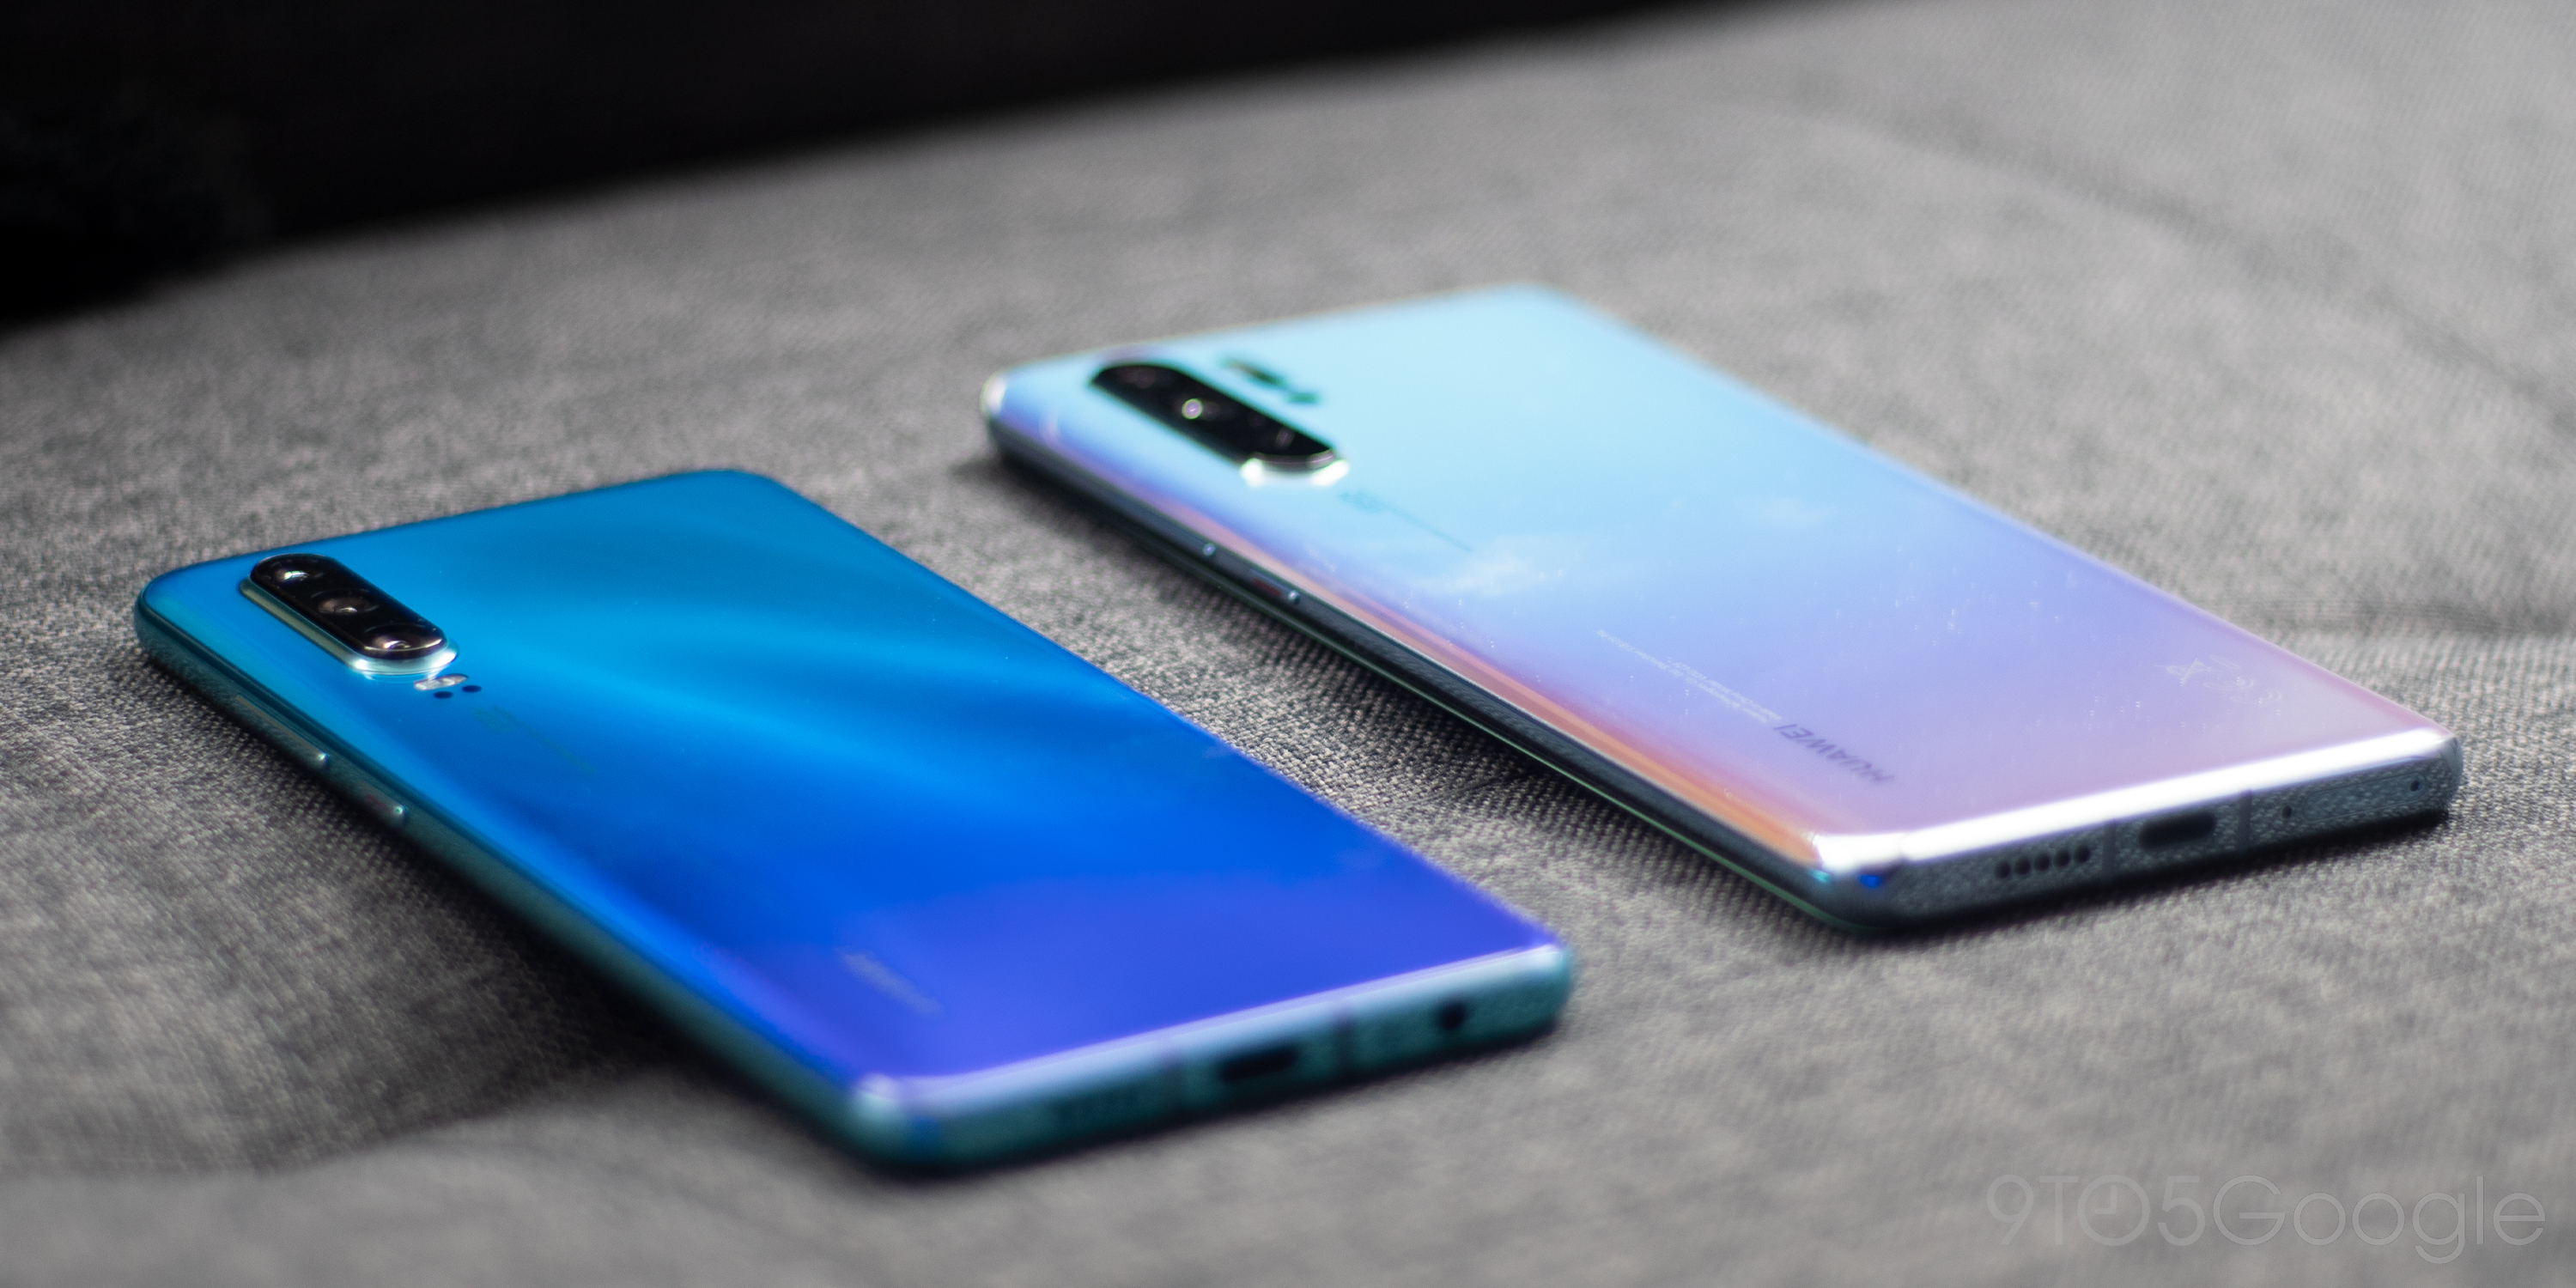 Report: Huawei reduces orders for new phones, reassesses goal of overtaking Samsung